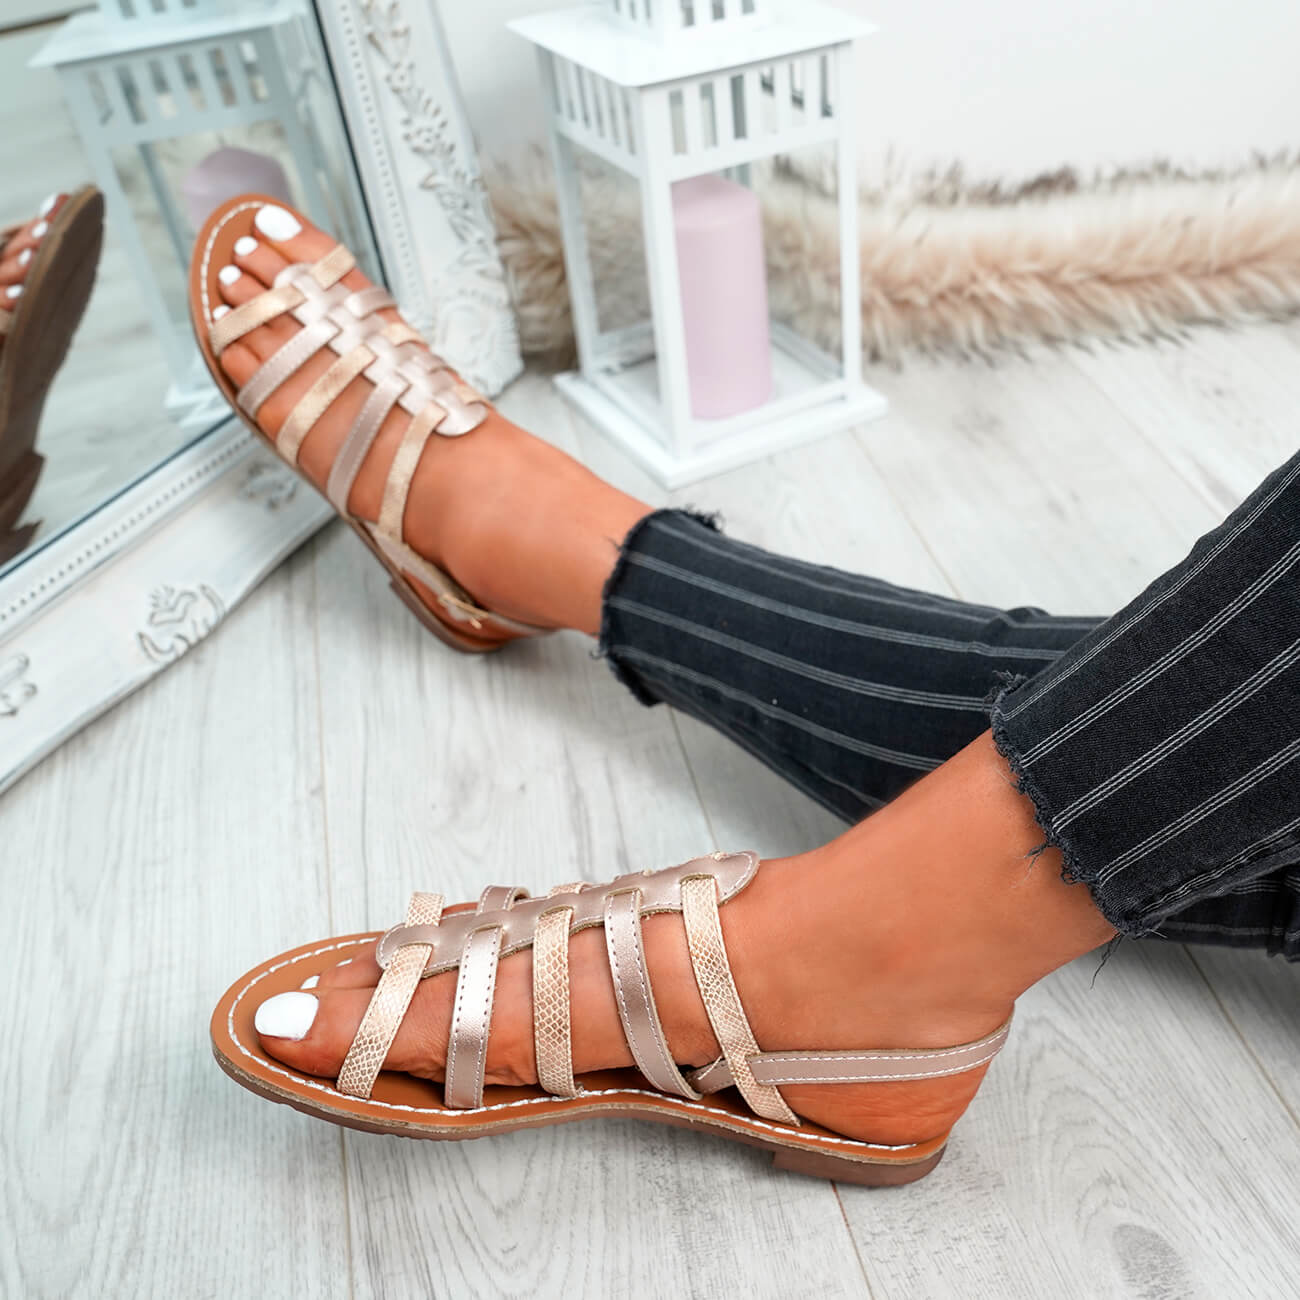 WOMENS-LADIES-BUCKLE-STRAP-FLAT-SUMMER-SANDALS-CASUAL-HOLIDAY-COMFY-SHOES-SIZE thumbnail 18